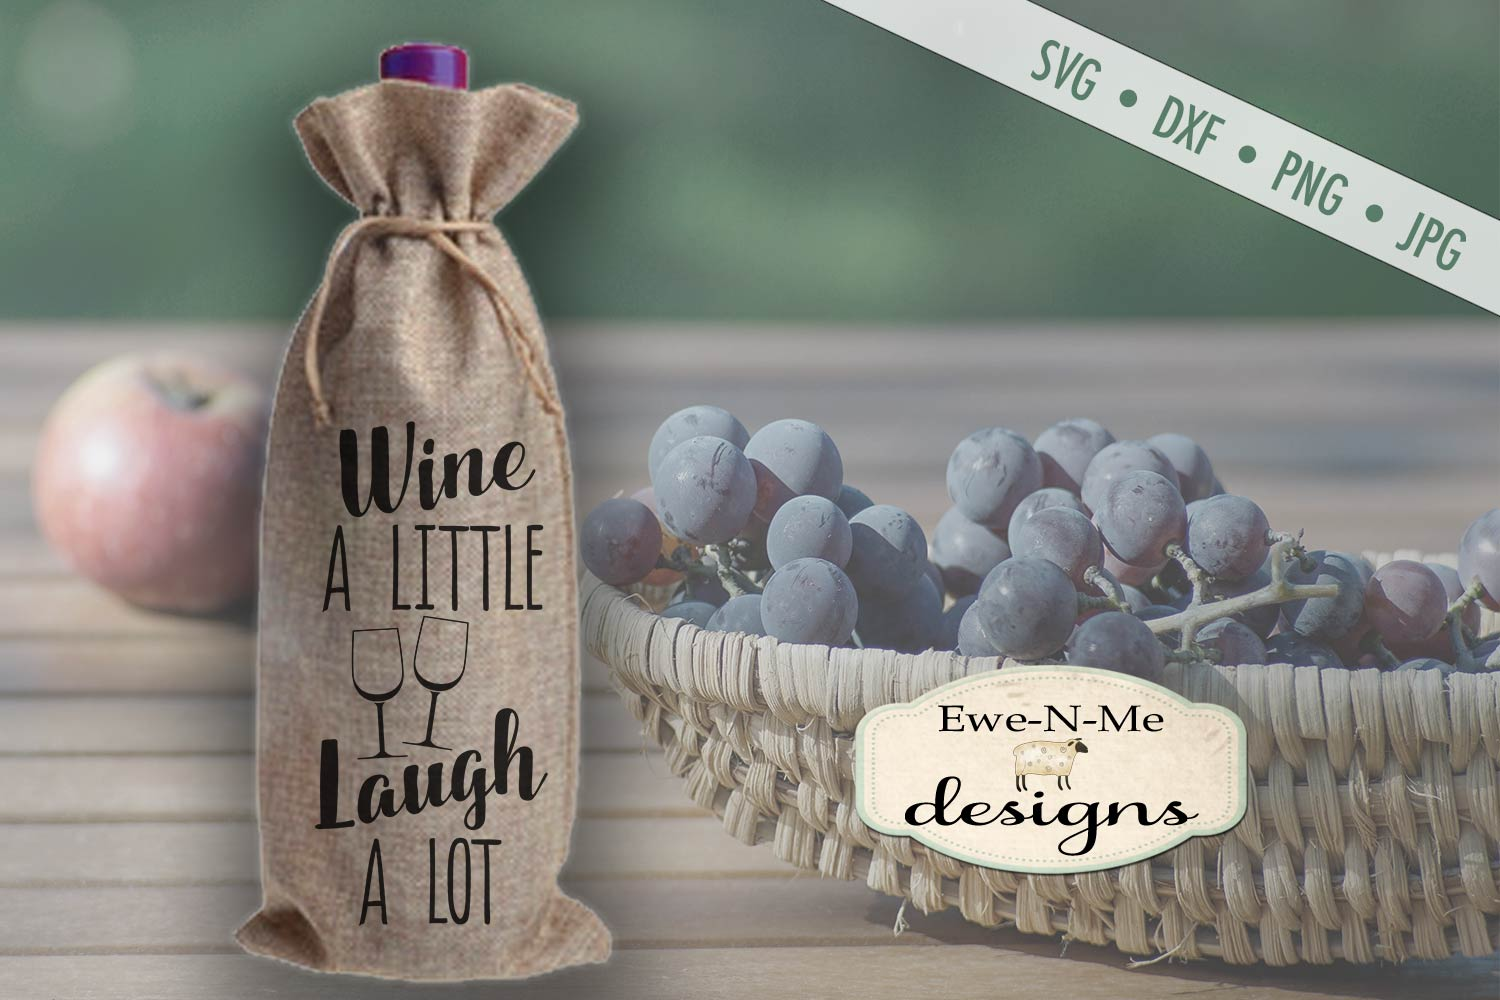 Wine A Little Laugh A Lot - Wine Bag - SVG DXF Files example image 1